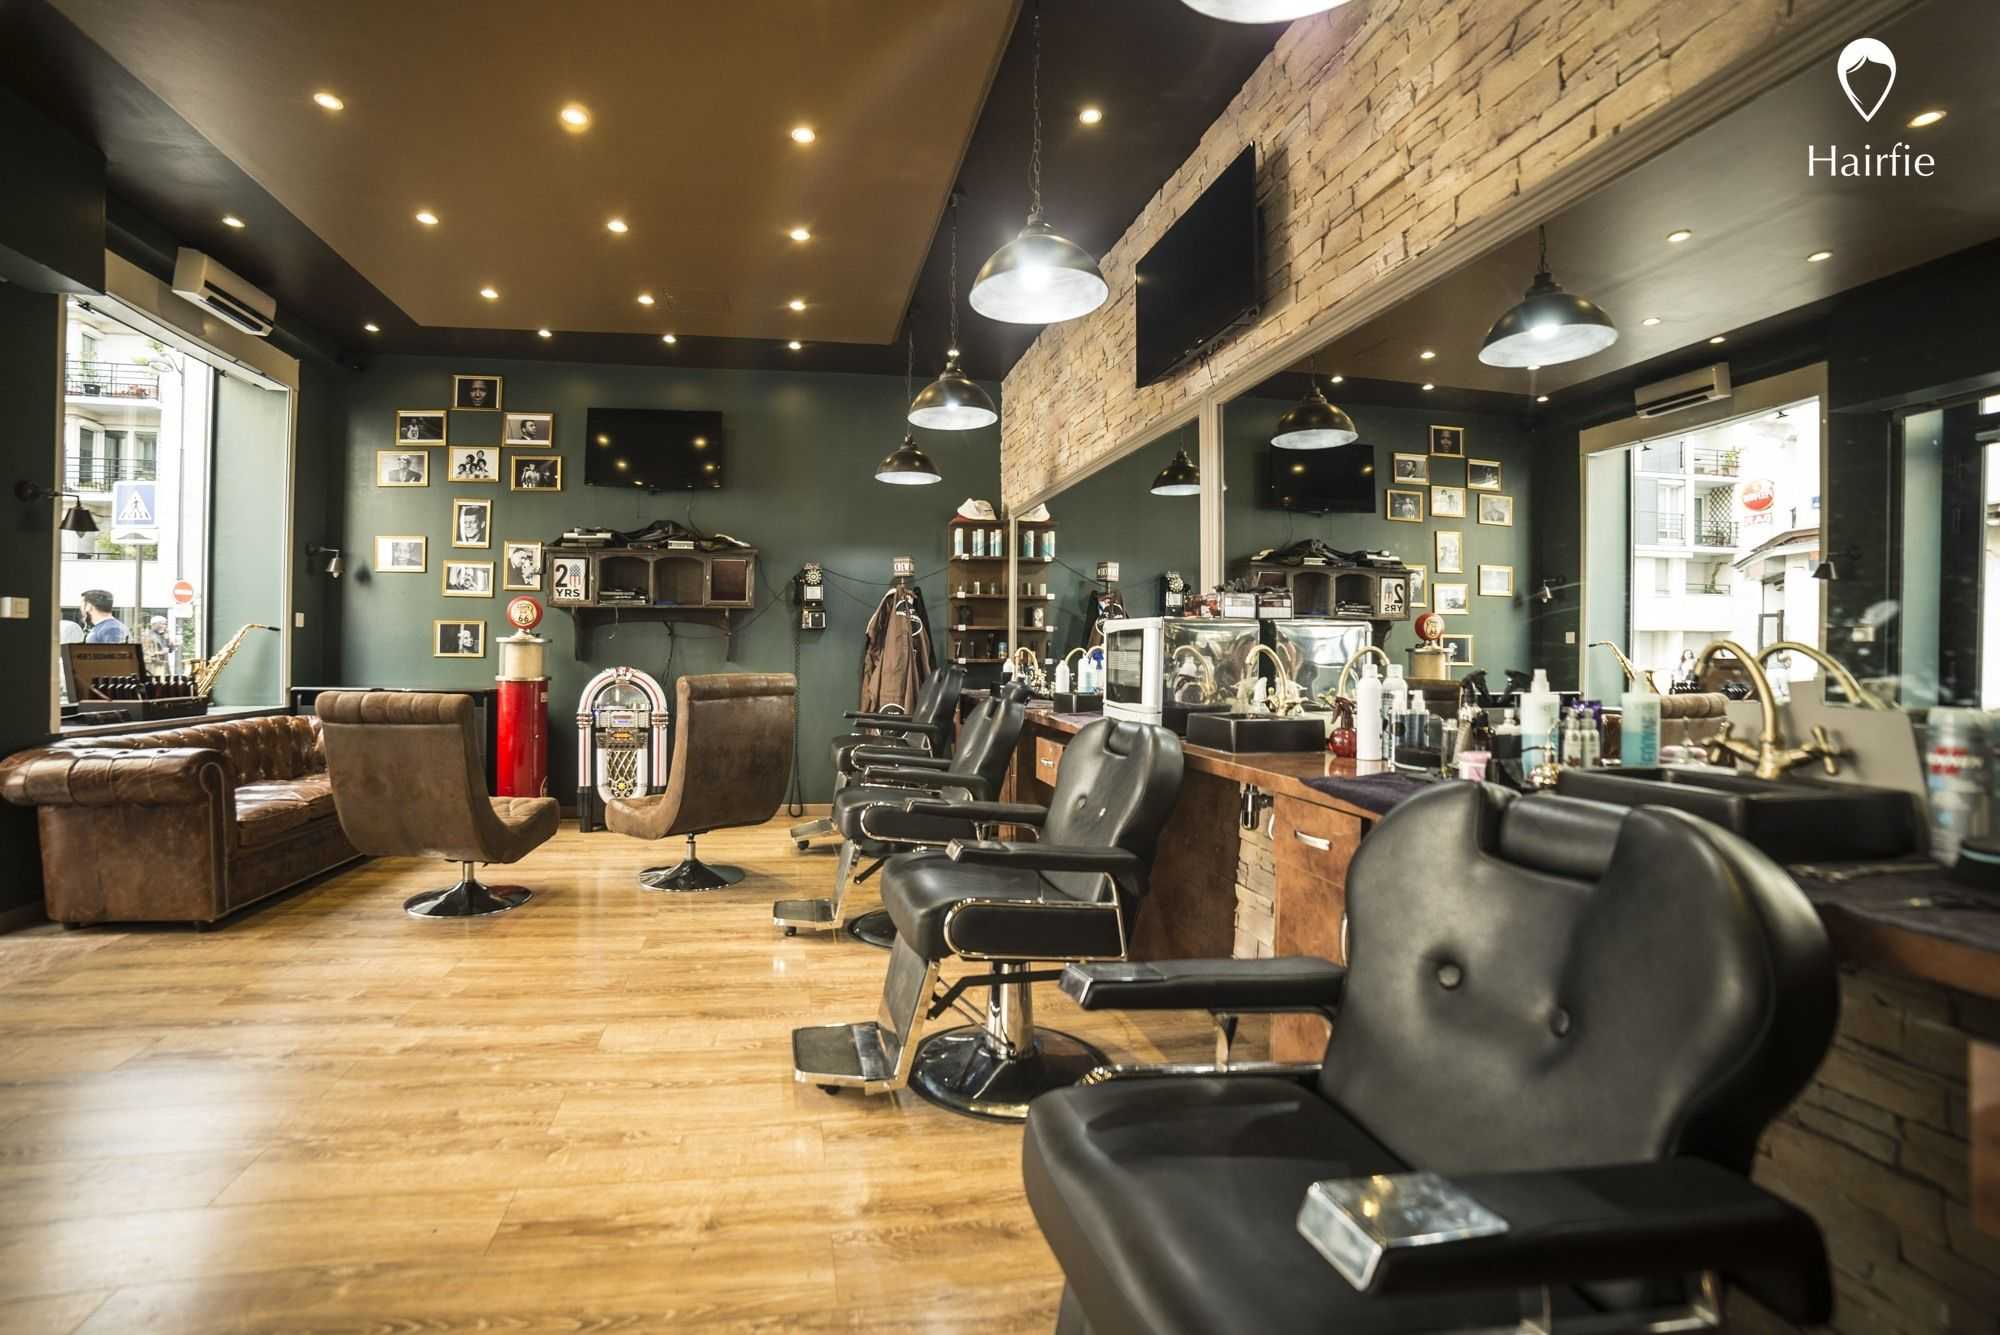 235th barber street coiffeur barbier